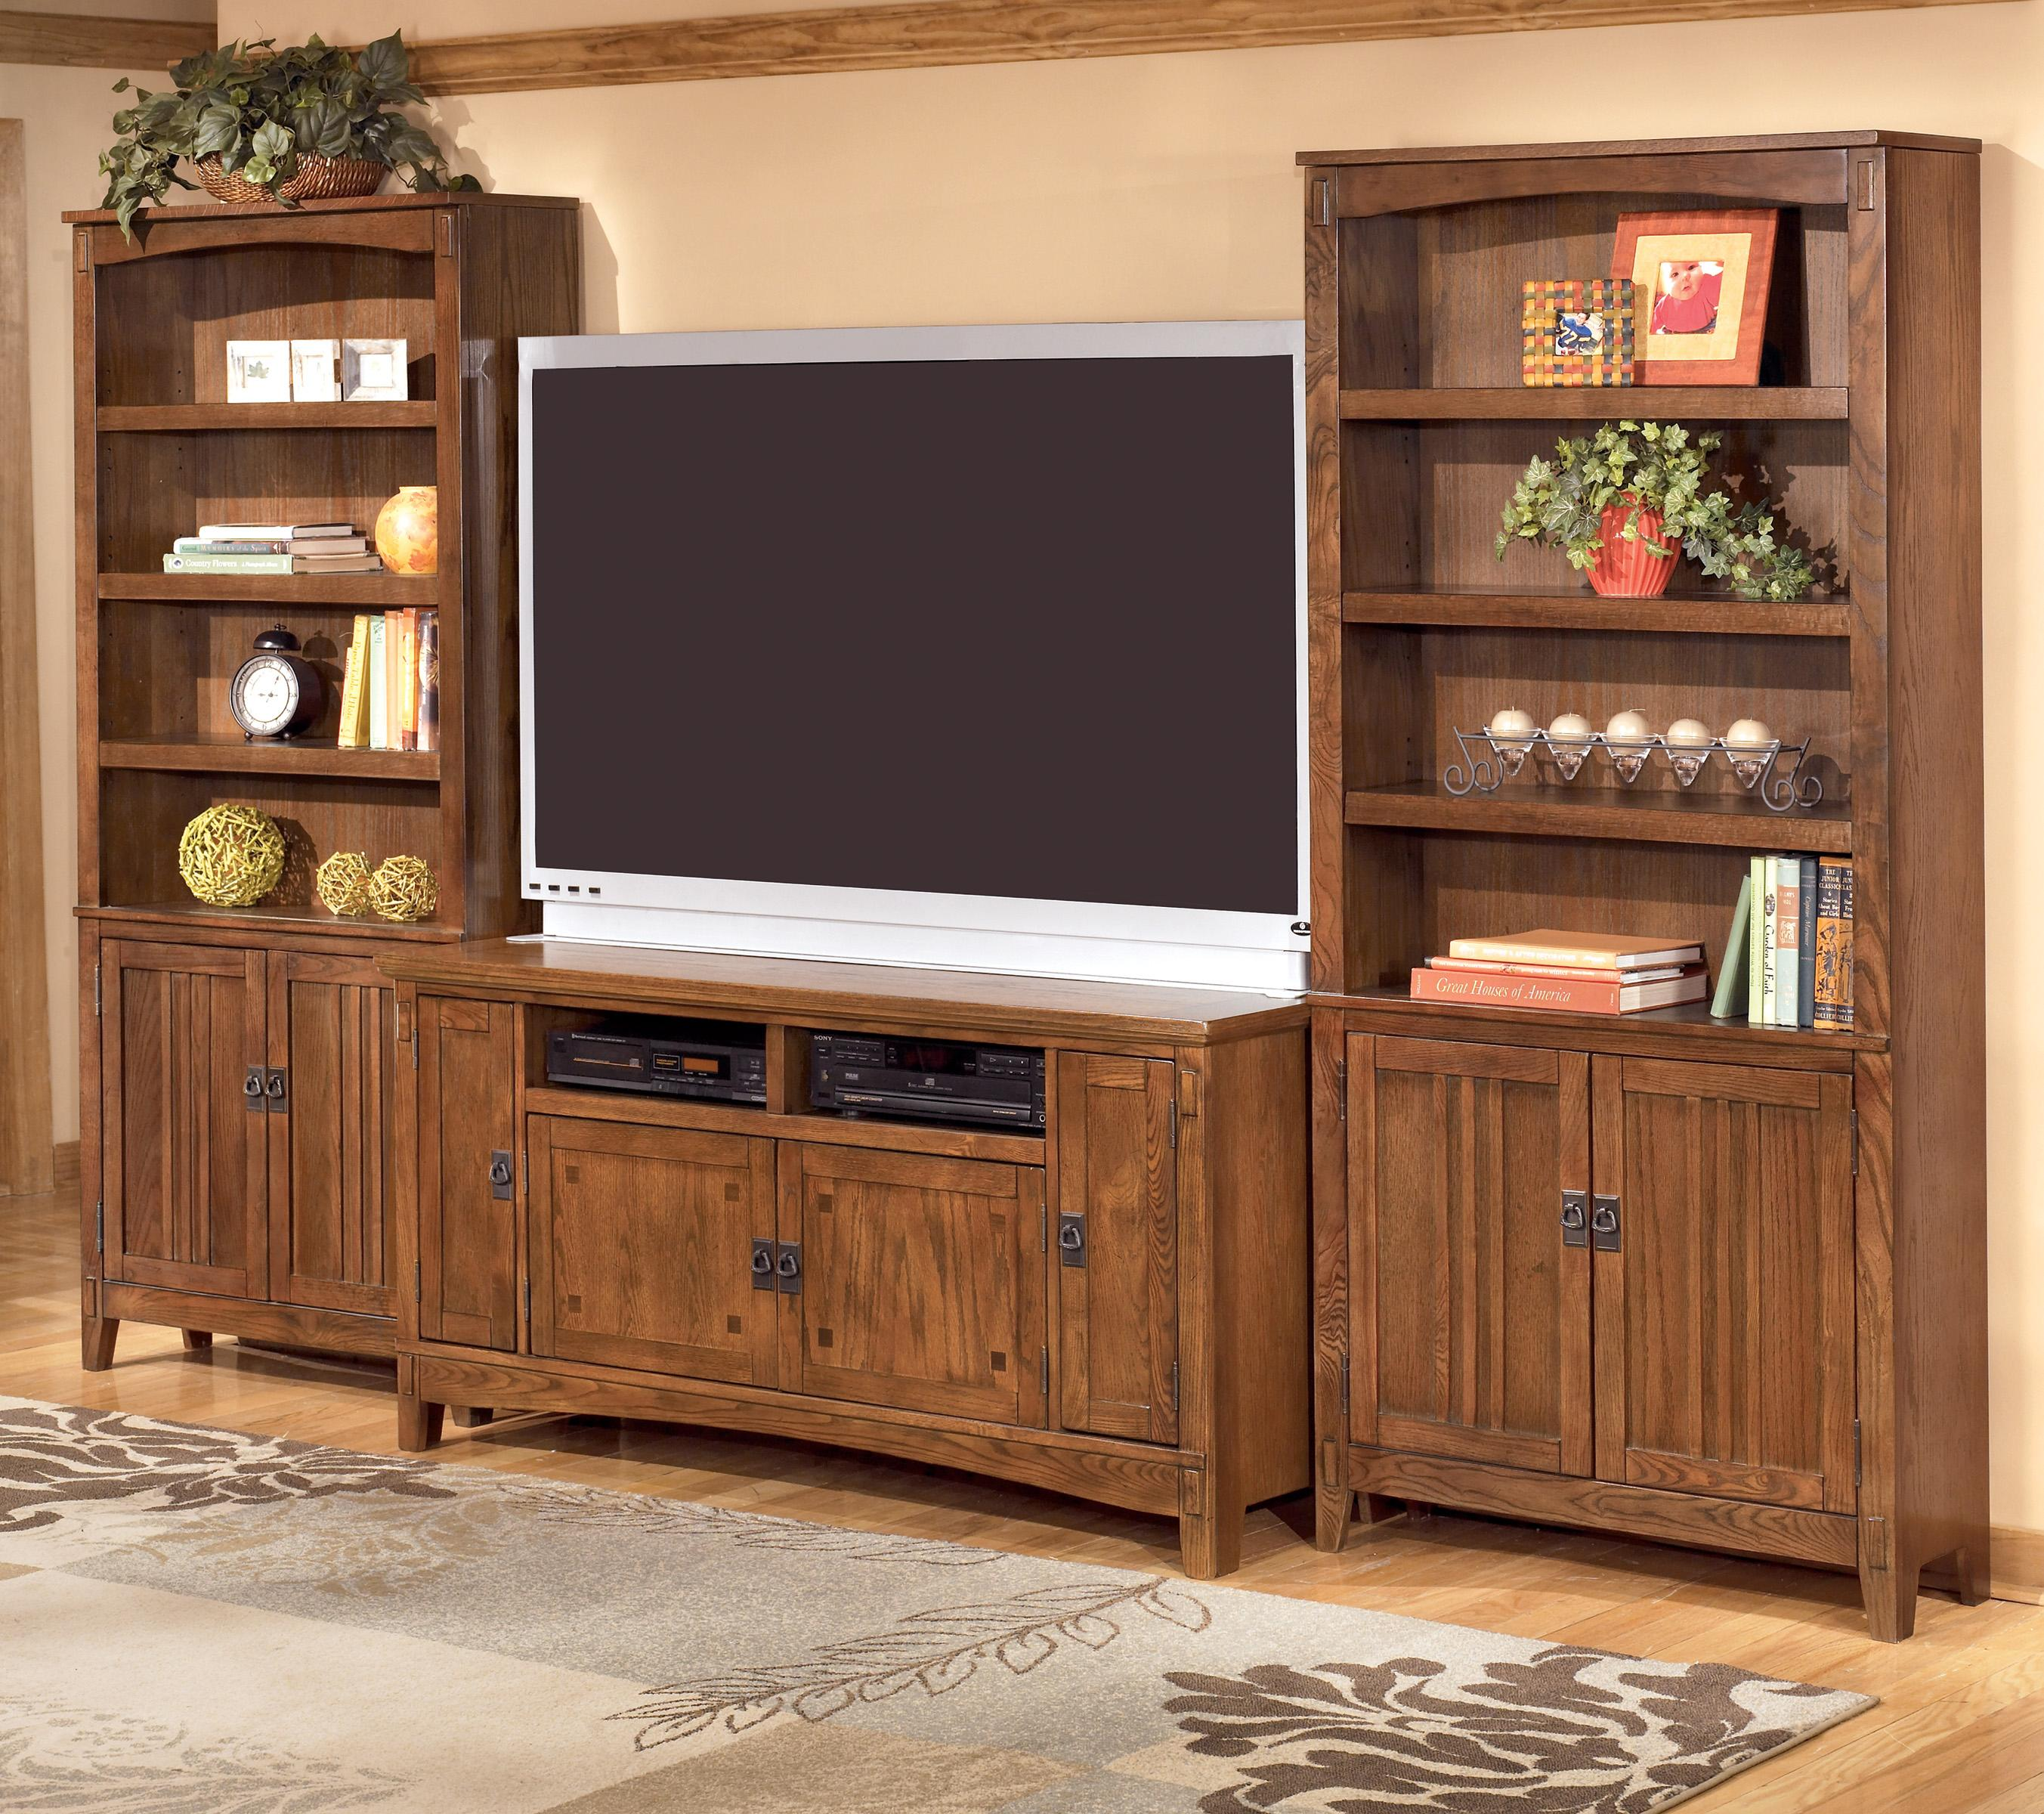 Ashley Furniture Cross Island 60 Inch TV Stand & 2 Large Door Bookcases - Item Number: W319-38+2xH319-18